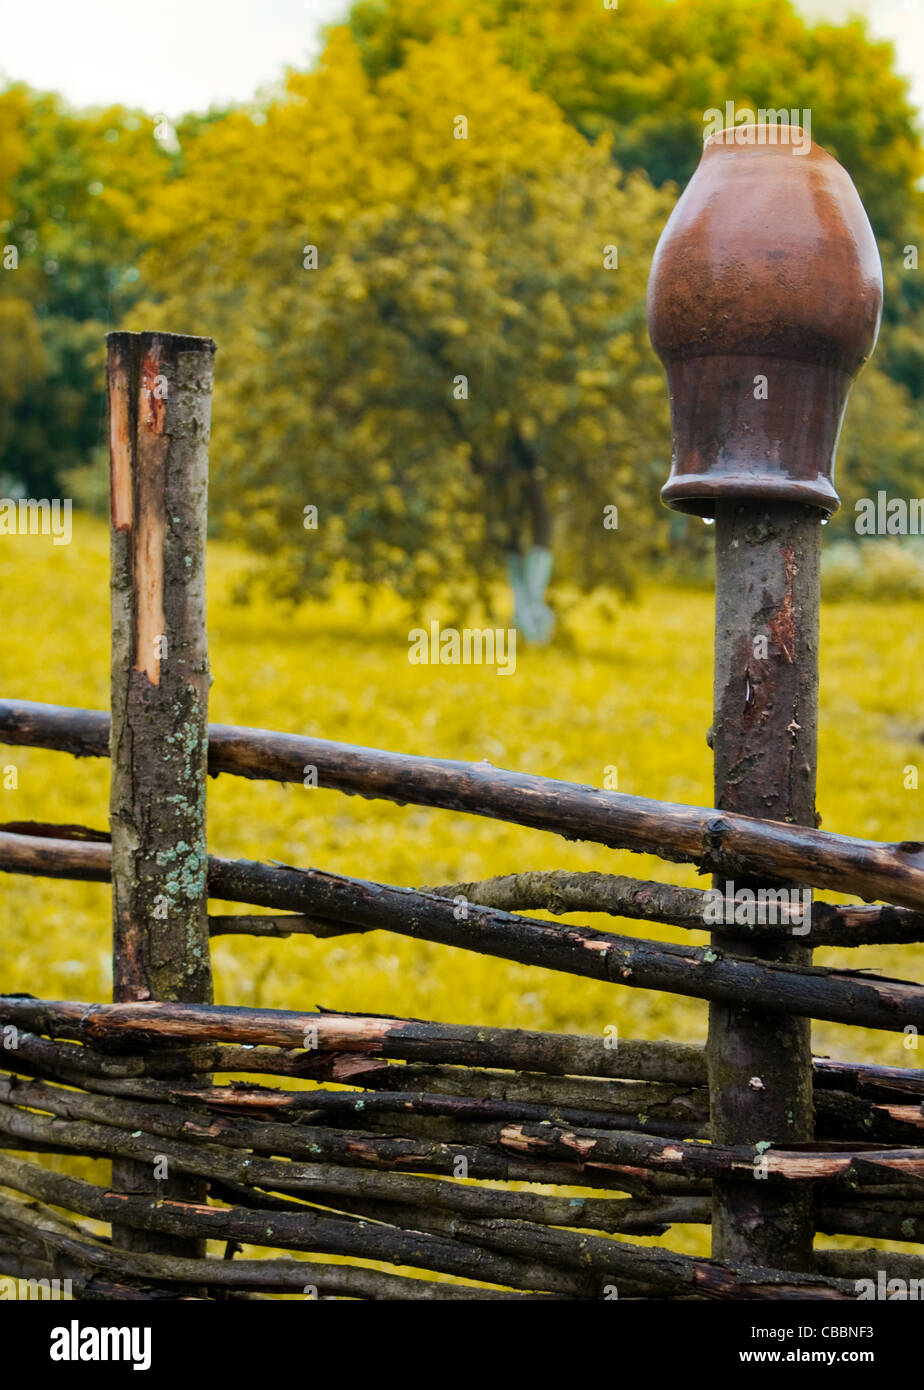 wooden farm fence. Pot On Wooden Farm Fence With Grass And Tree In Background